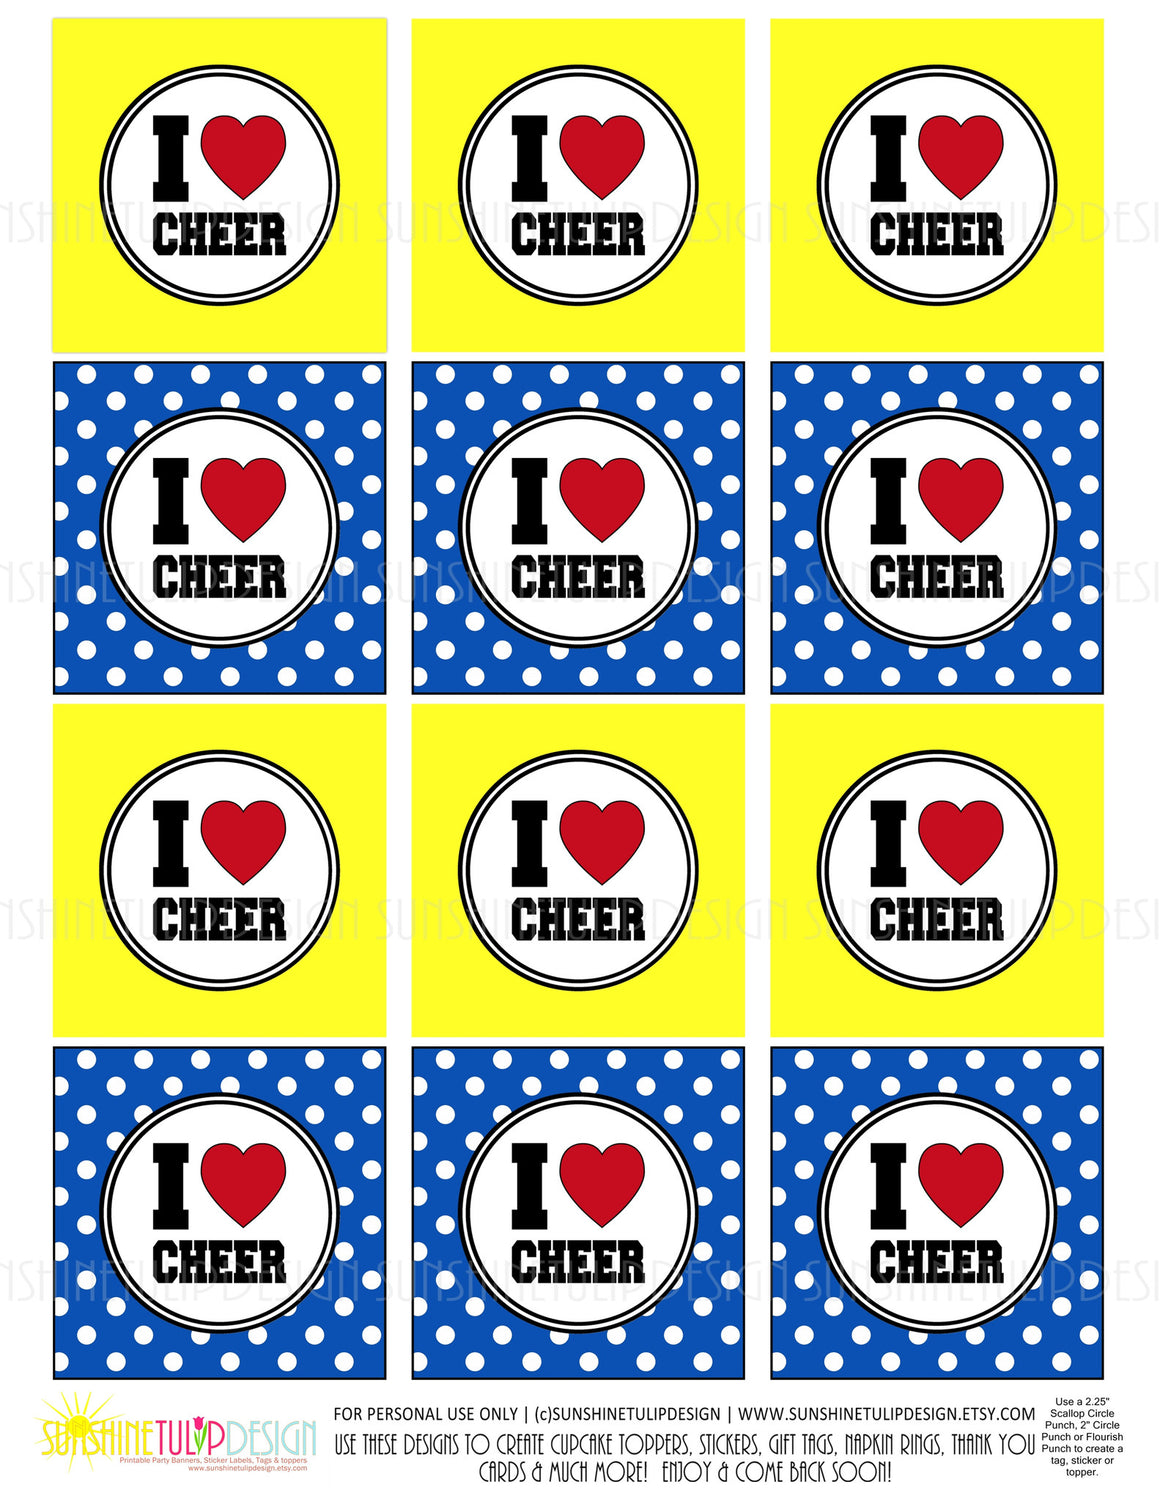 Printable Cheer Cupcake Toppers, Sticker Labels & Gift Tags - Sunshinetulipdesign